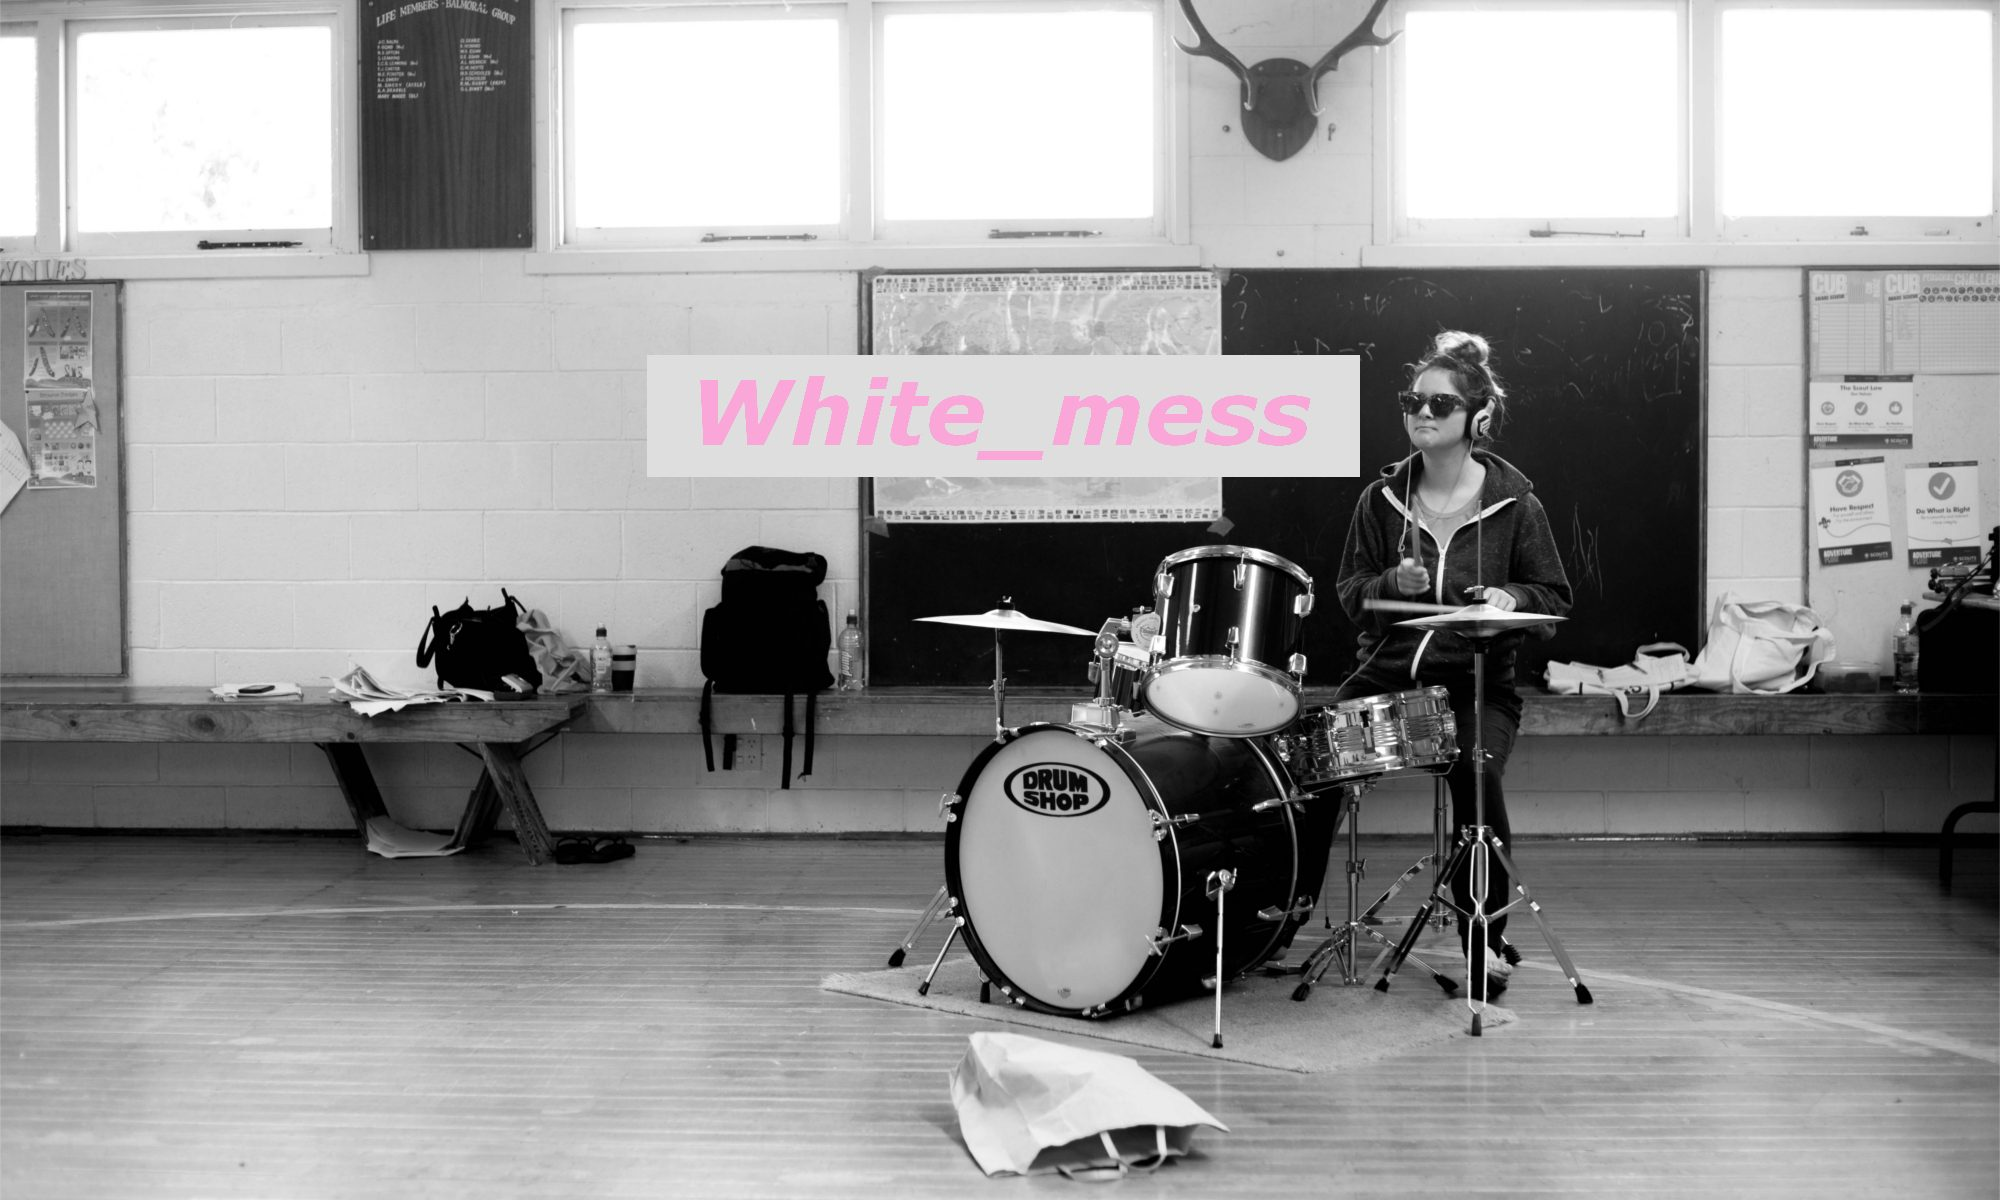 WELCOME TO WHITE_MESS